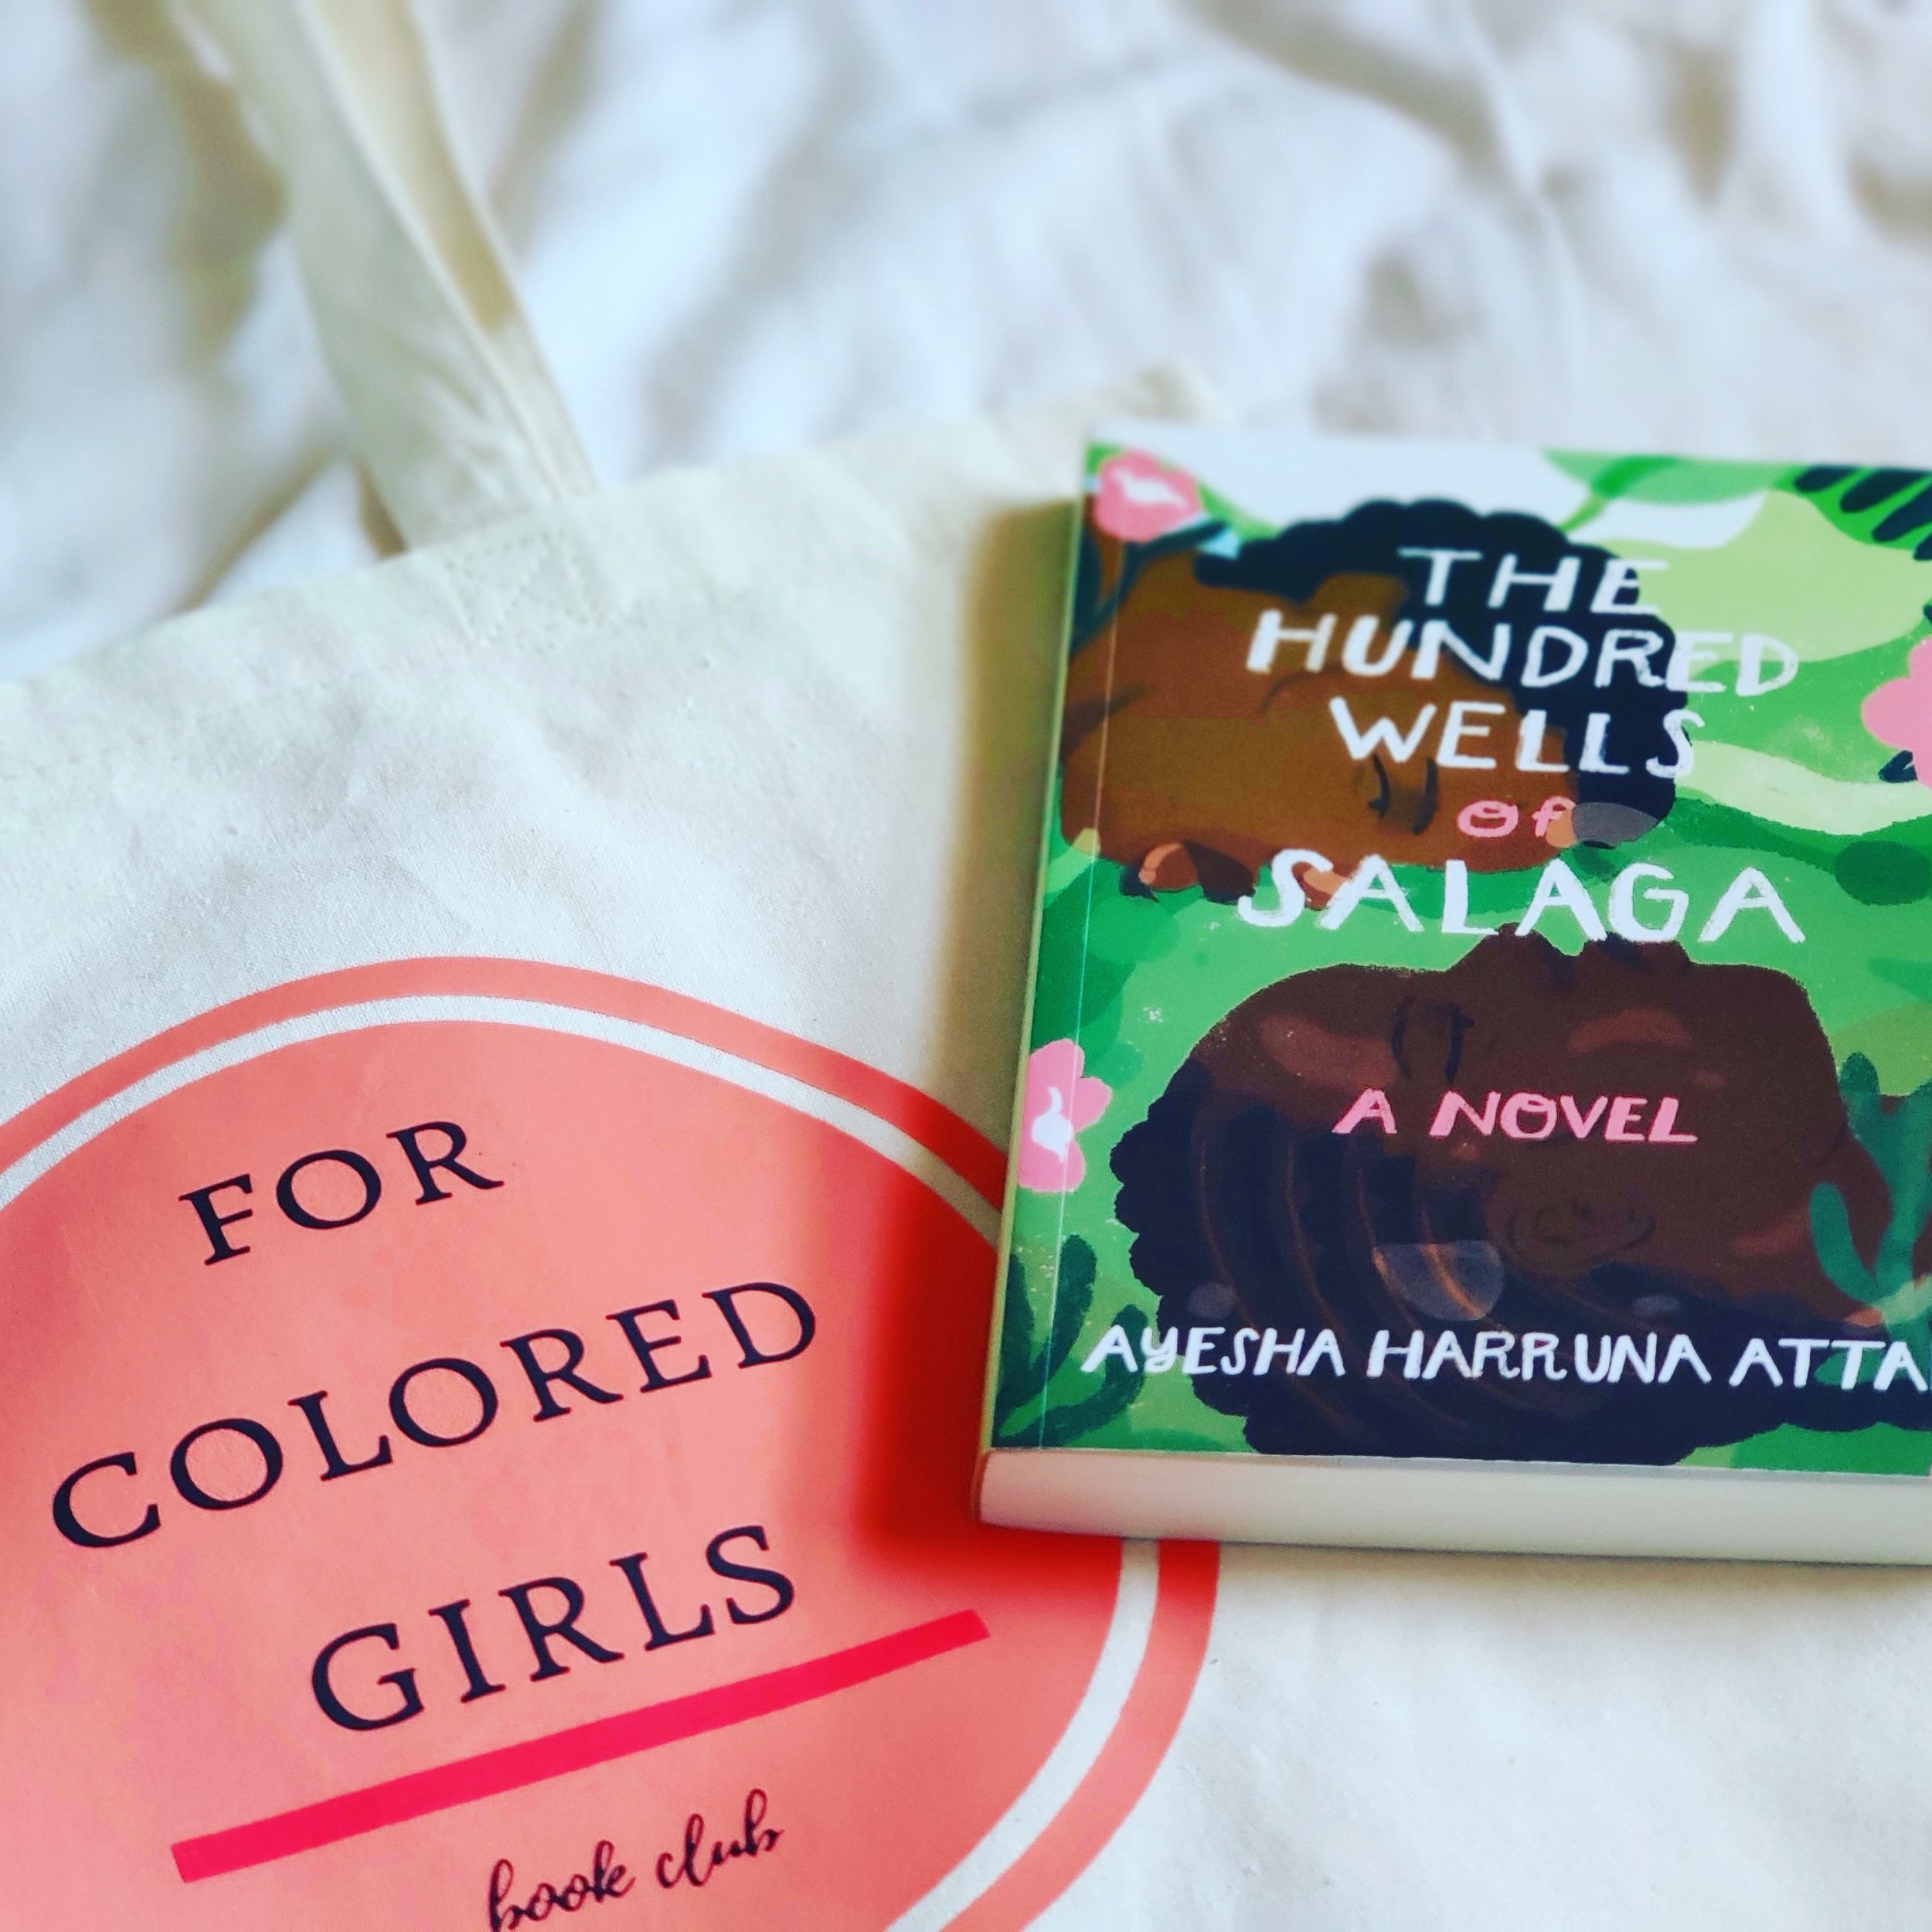 The Hundred Wells of Salaga  by Ayesha Harruna Attah. Image from @forcoloredgirlsbookclub on Instagram